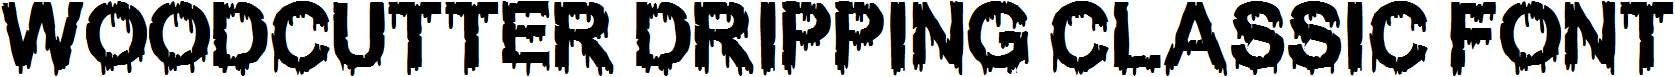 WOODCUTTER-DRIPPING-CLASSIC-FONT